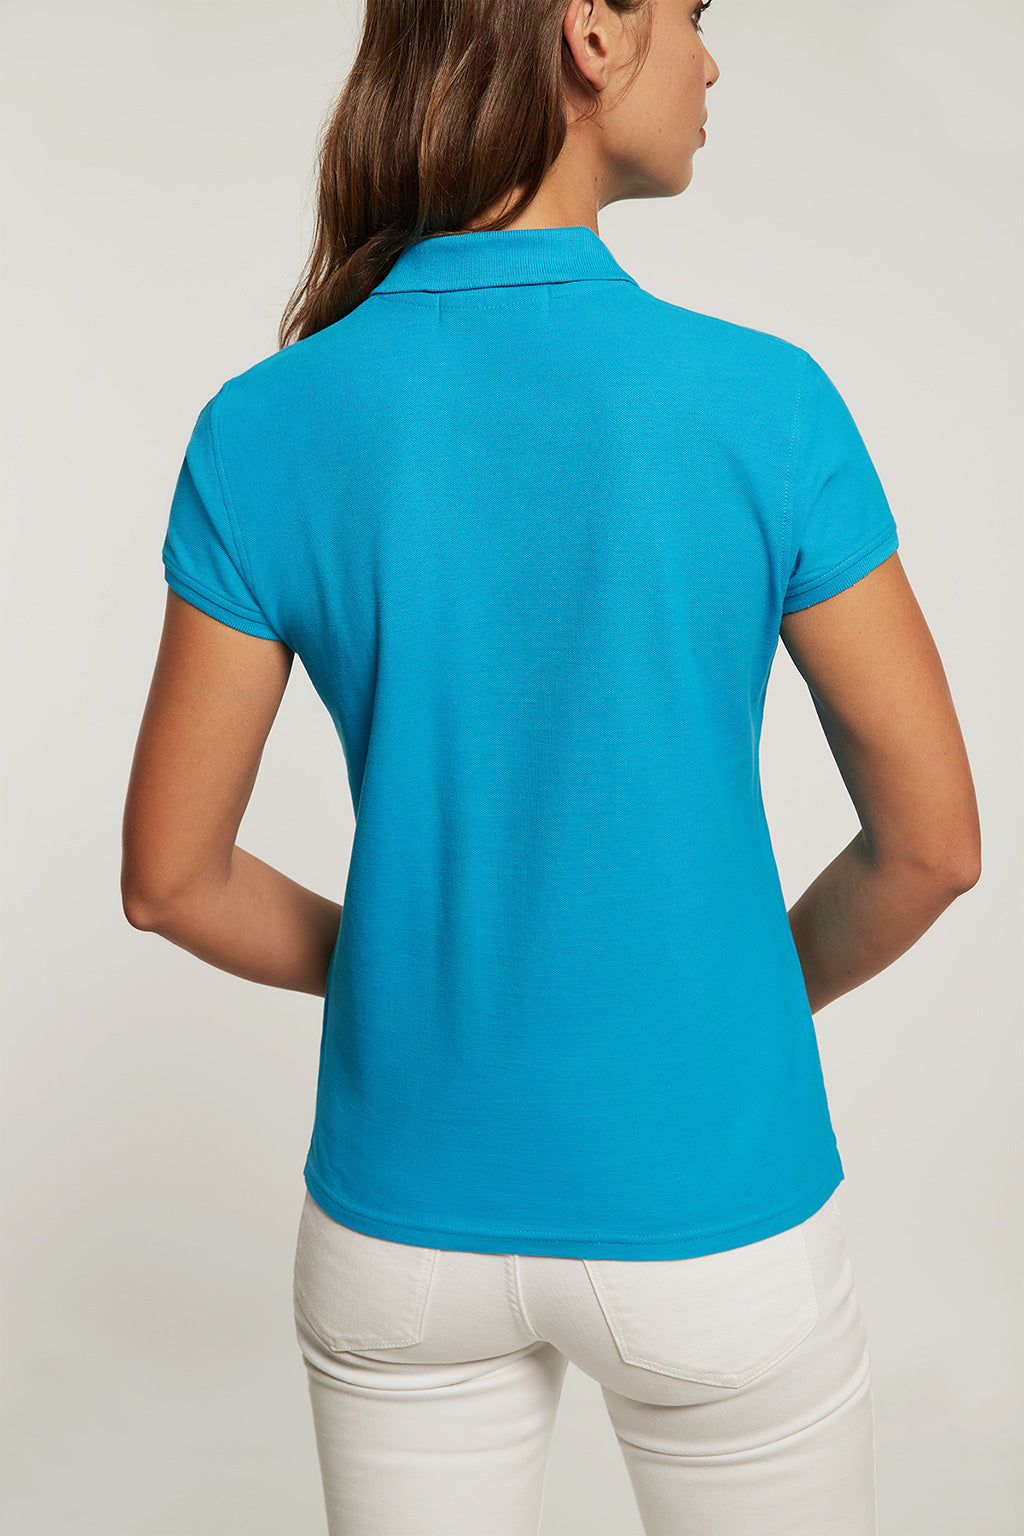 Turquoise polo shirt with embroidery